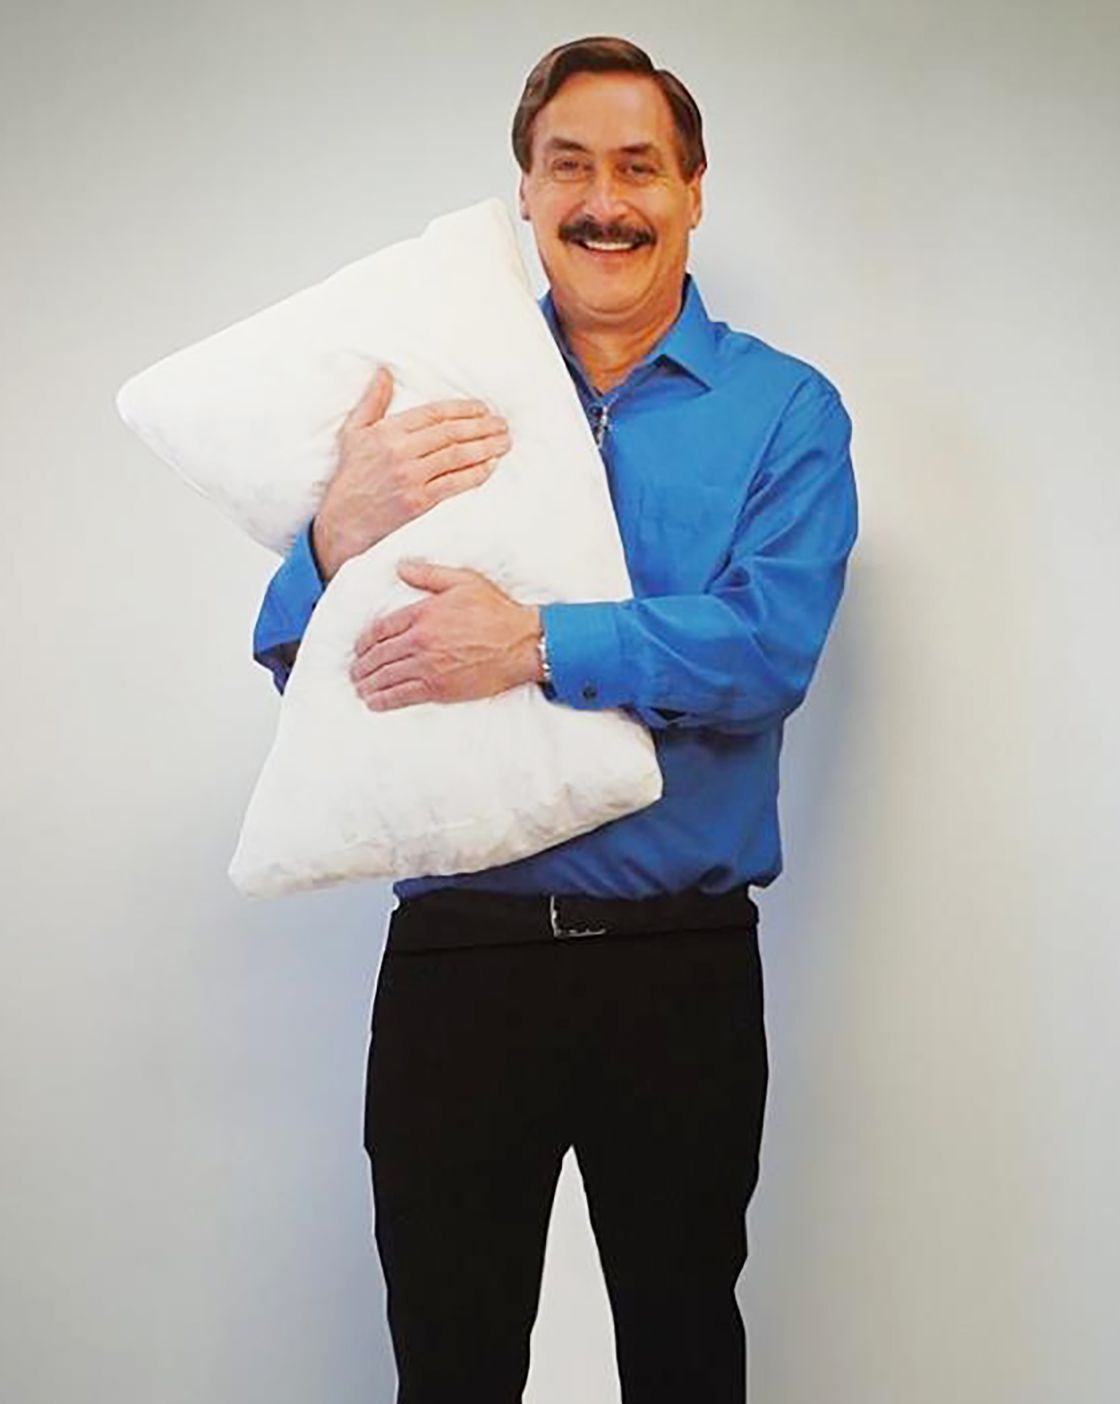 Cops Called On Cardboard Cutout Of Mypillow Ceo Mike Lindell